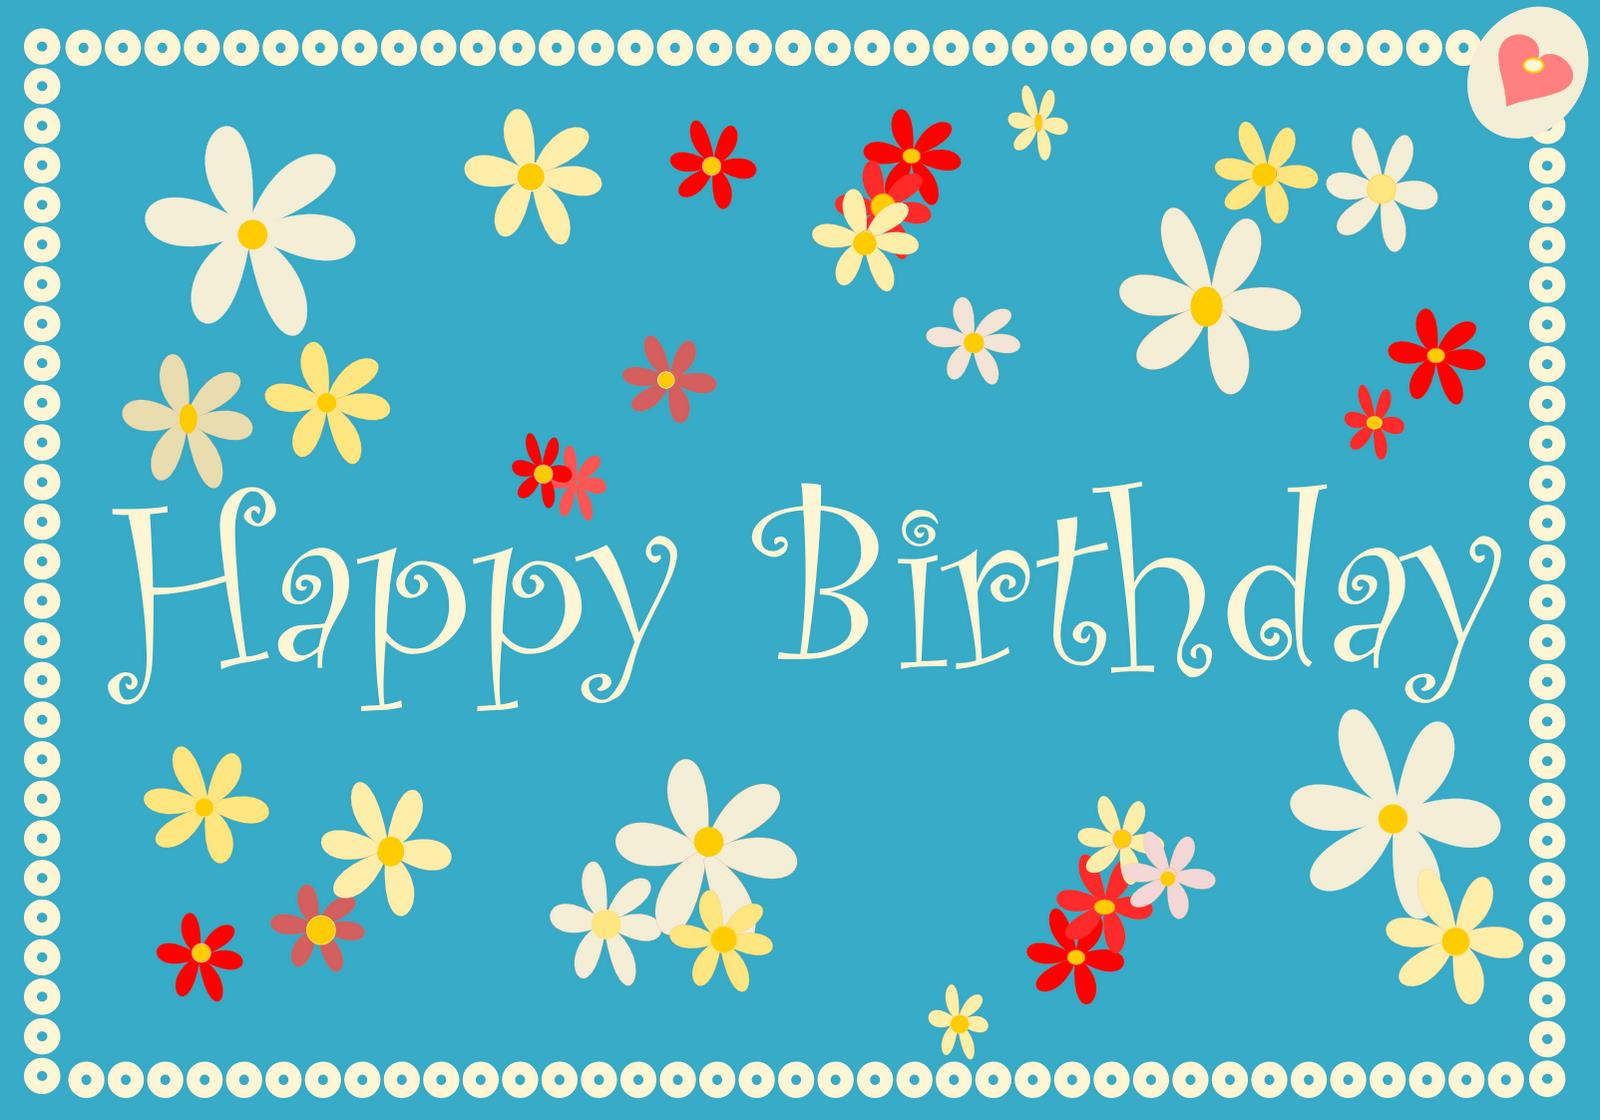 happy birthday card images for him ; happy-birthday-cards